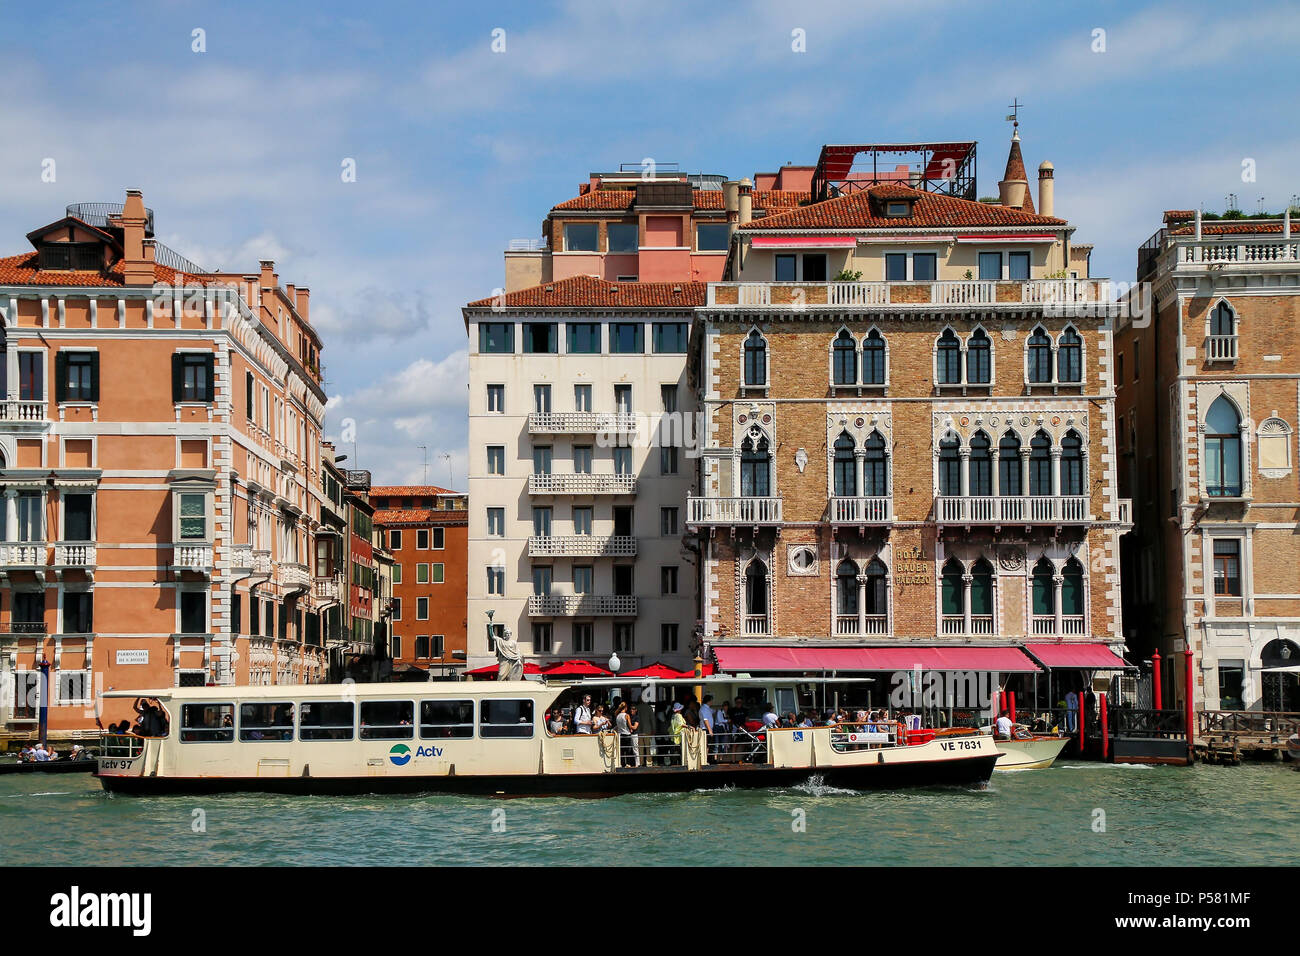 Vaporetto (water public bus) moving on Grand Canal in Venice, Italy. Venice is situated across a group of 117 small islands that are separated by cana - Stock Image